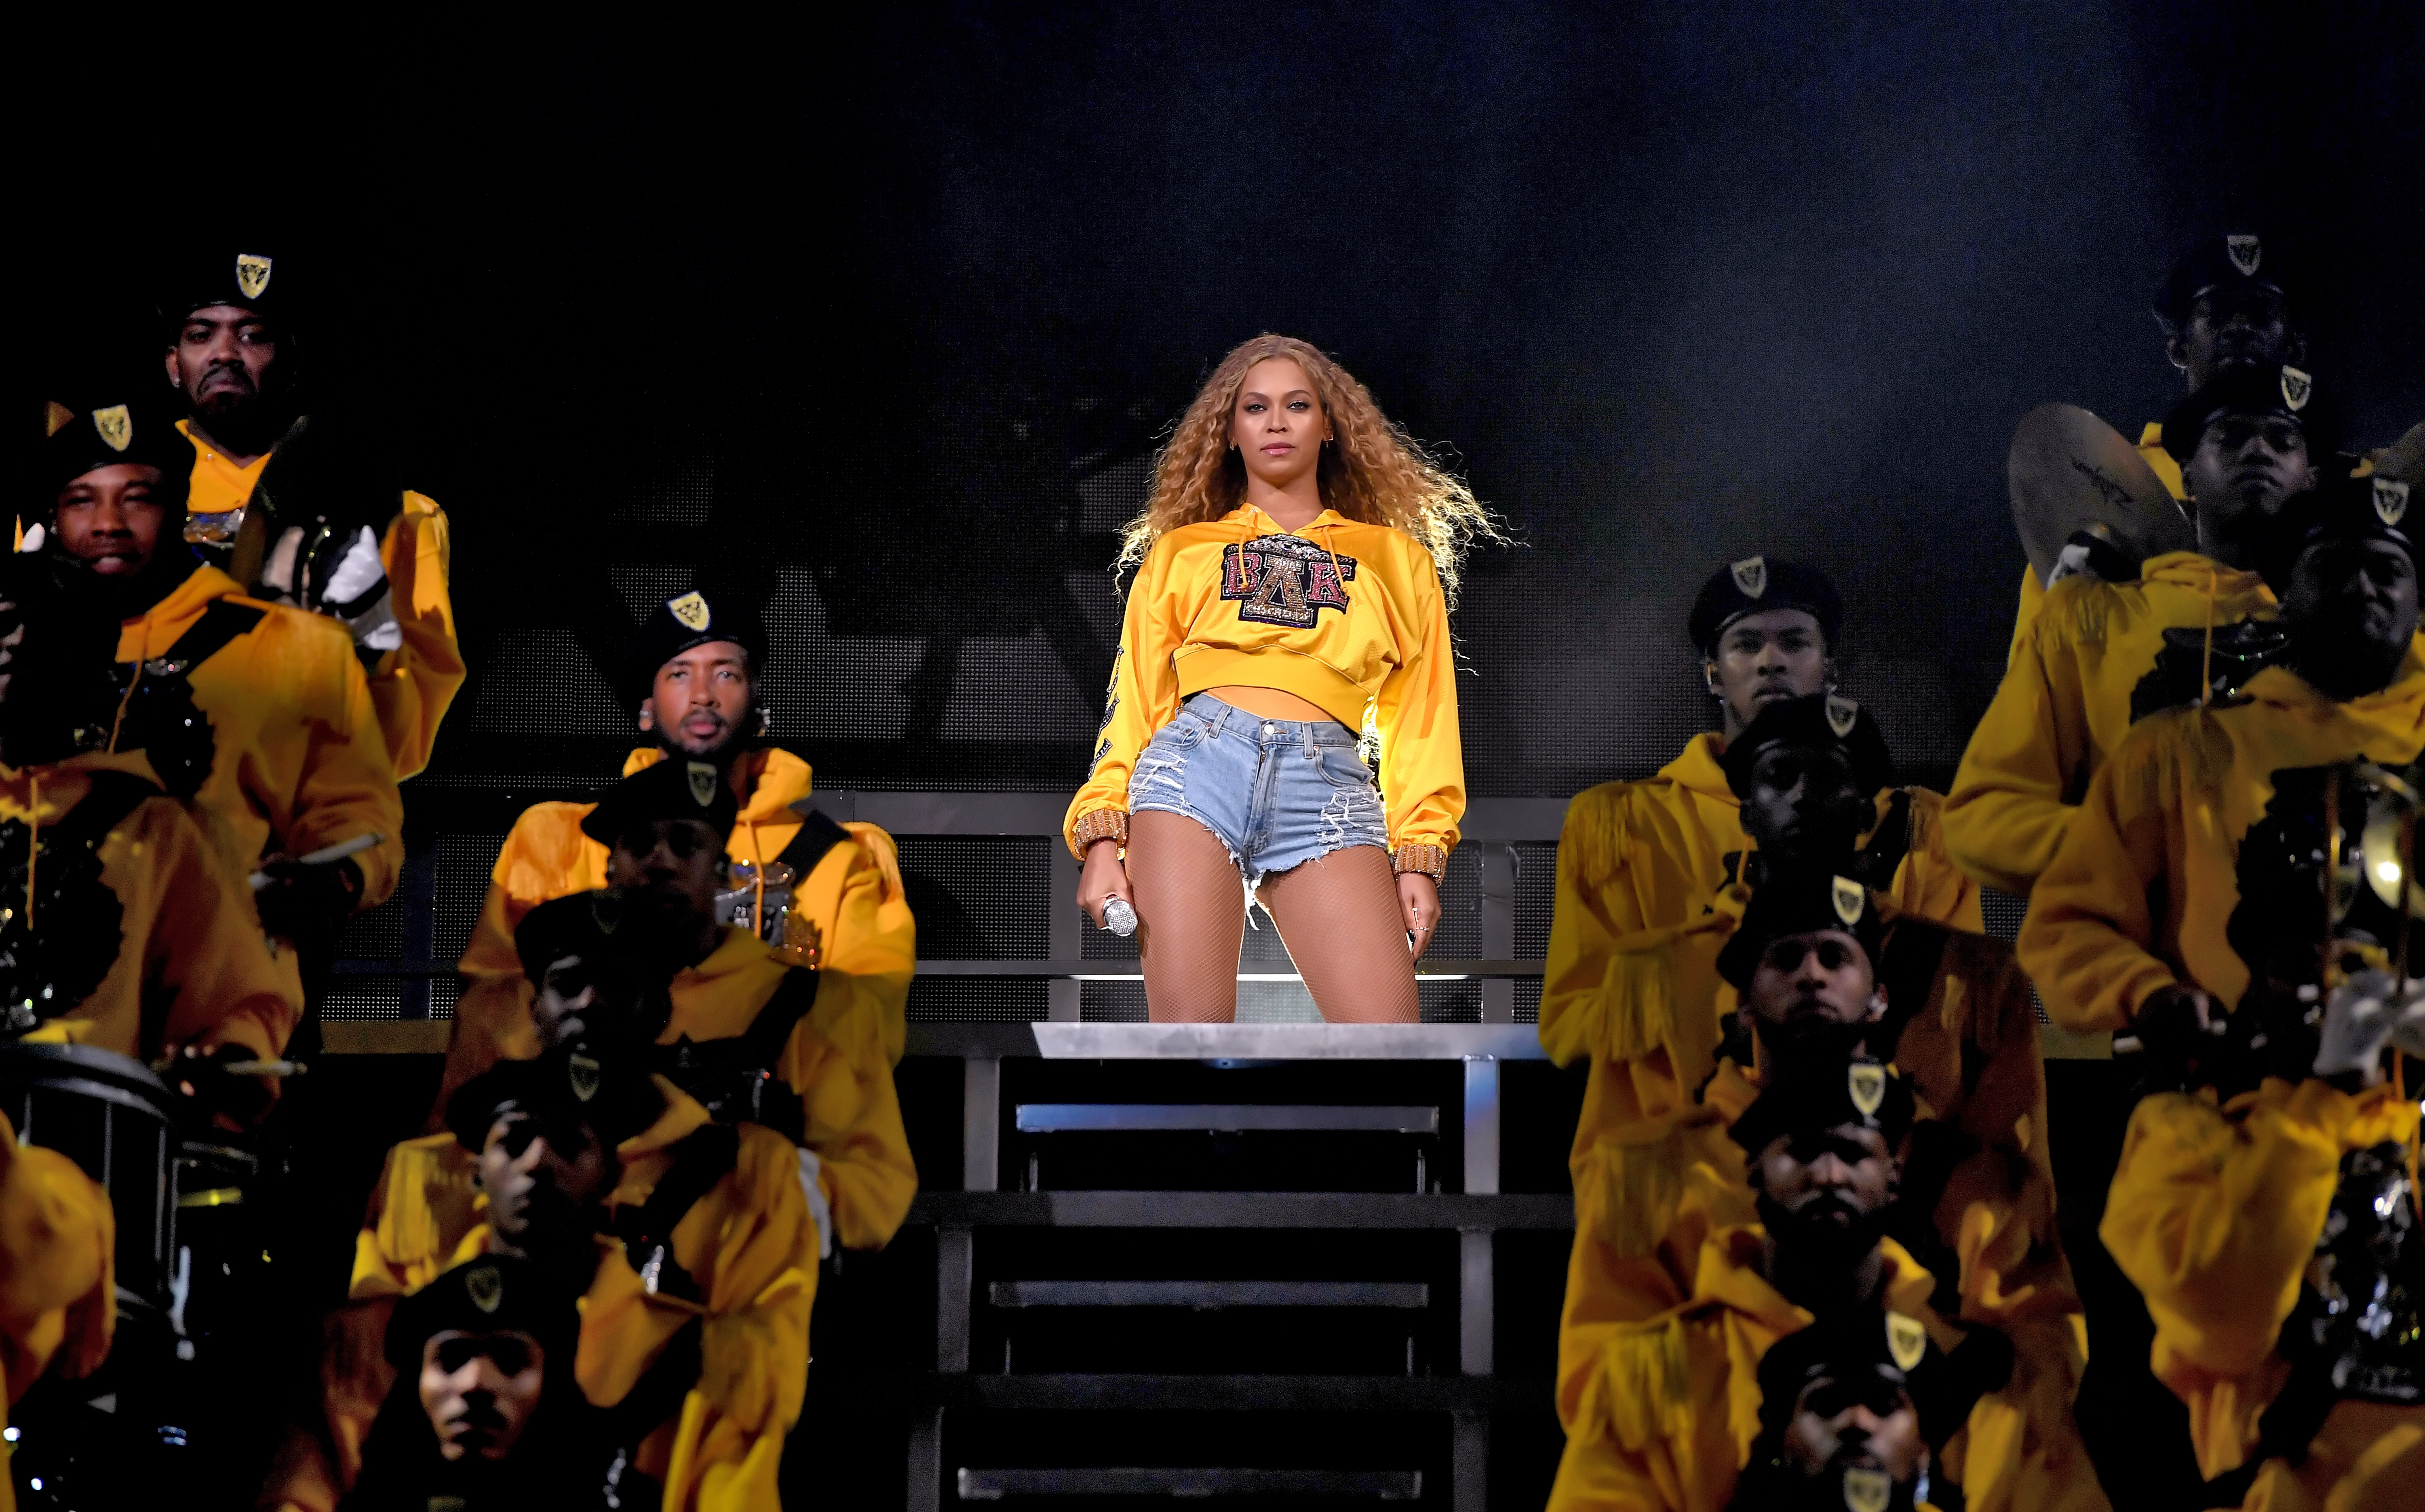 Beyoncé knew Coachella's white audience wouldn't understand her set. That's why she did it.